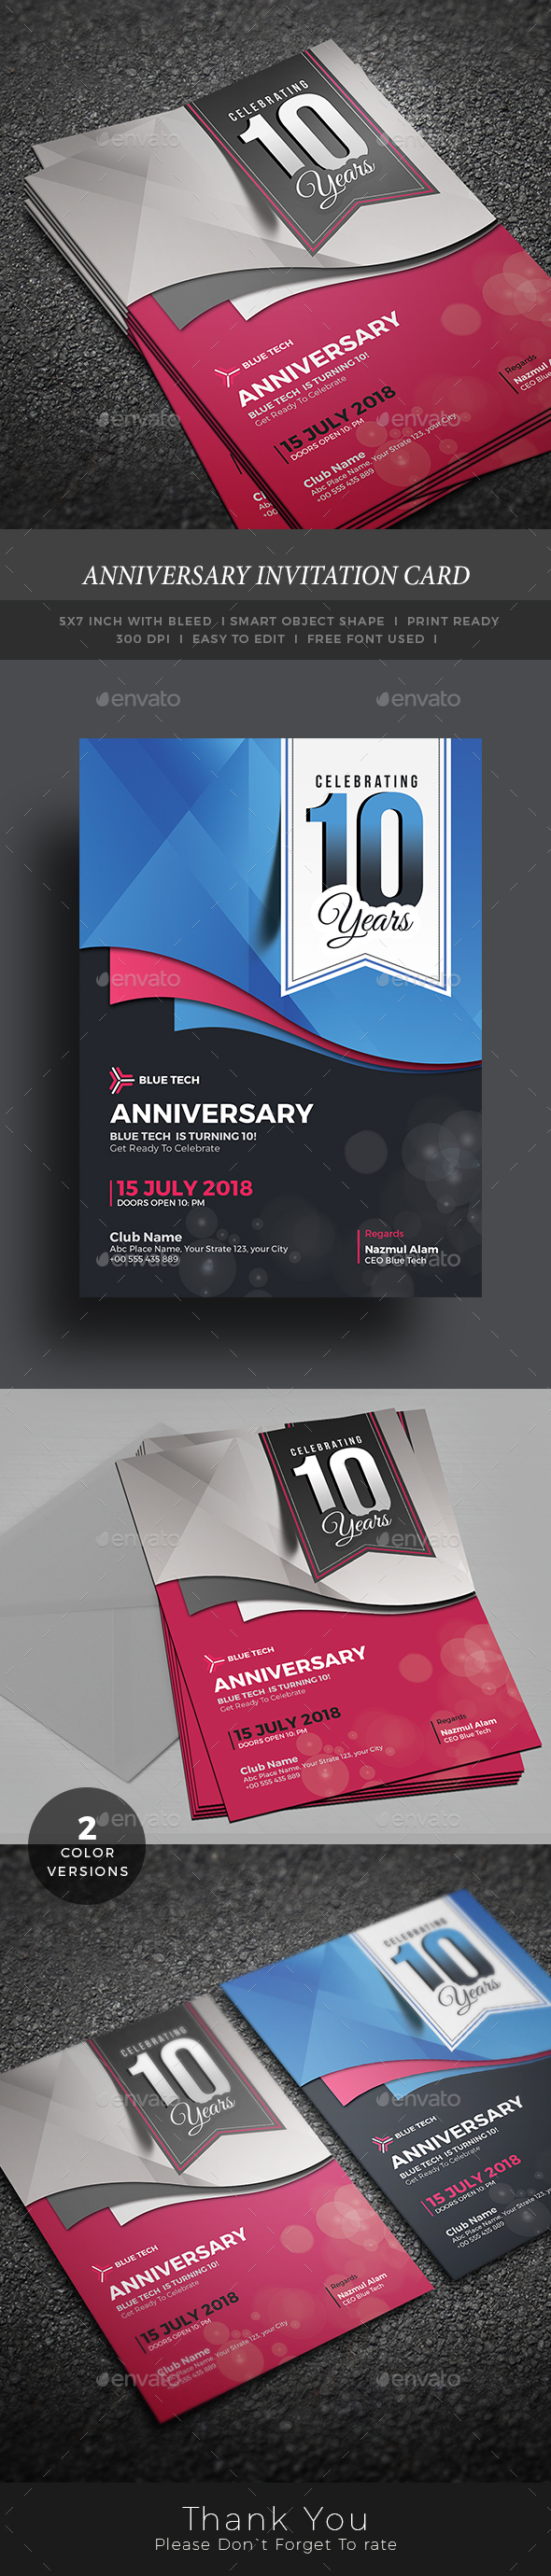 Anniversary invitation card by themedevisers graphicriver anniversary invitation card anniversary greeting cards stopboris Image collections